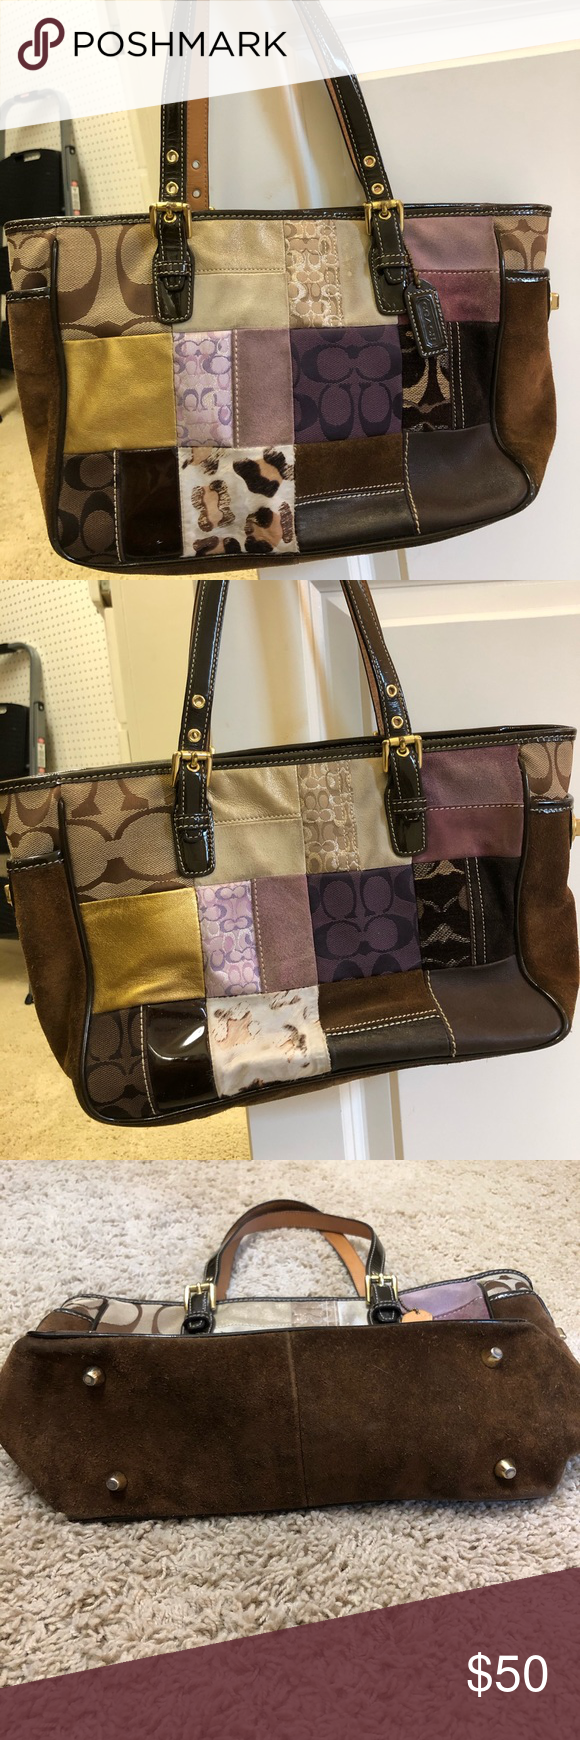 Vintage Coach Patchwork Tote I coveted this purse when it came out Brown su